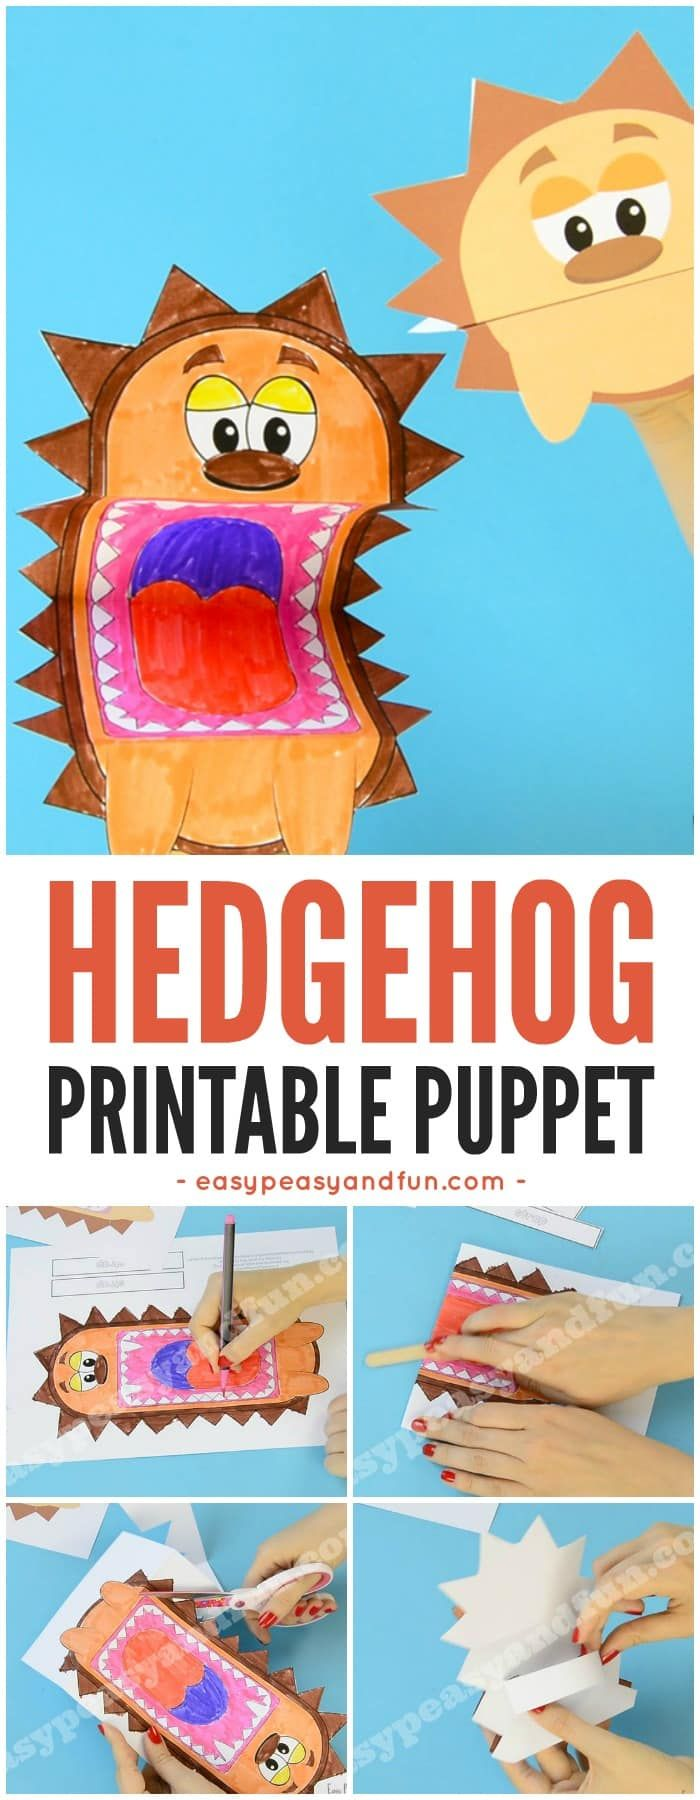 Easy Peasy And Fun: Printable Hedgehog Puppets